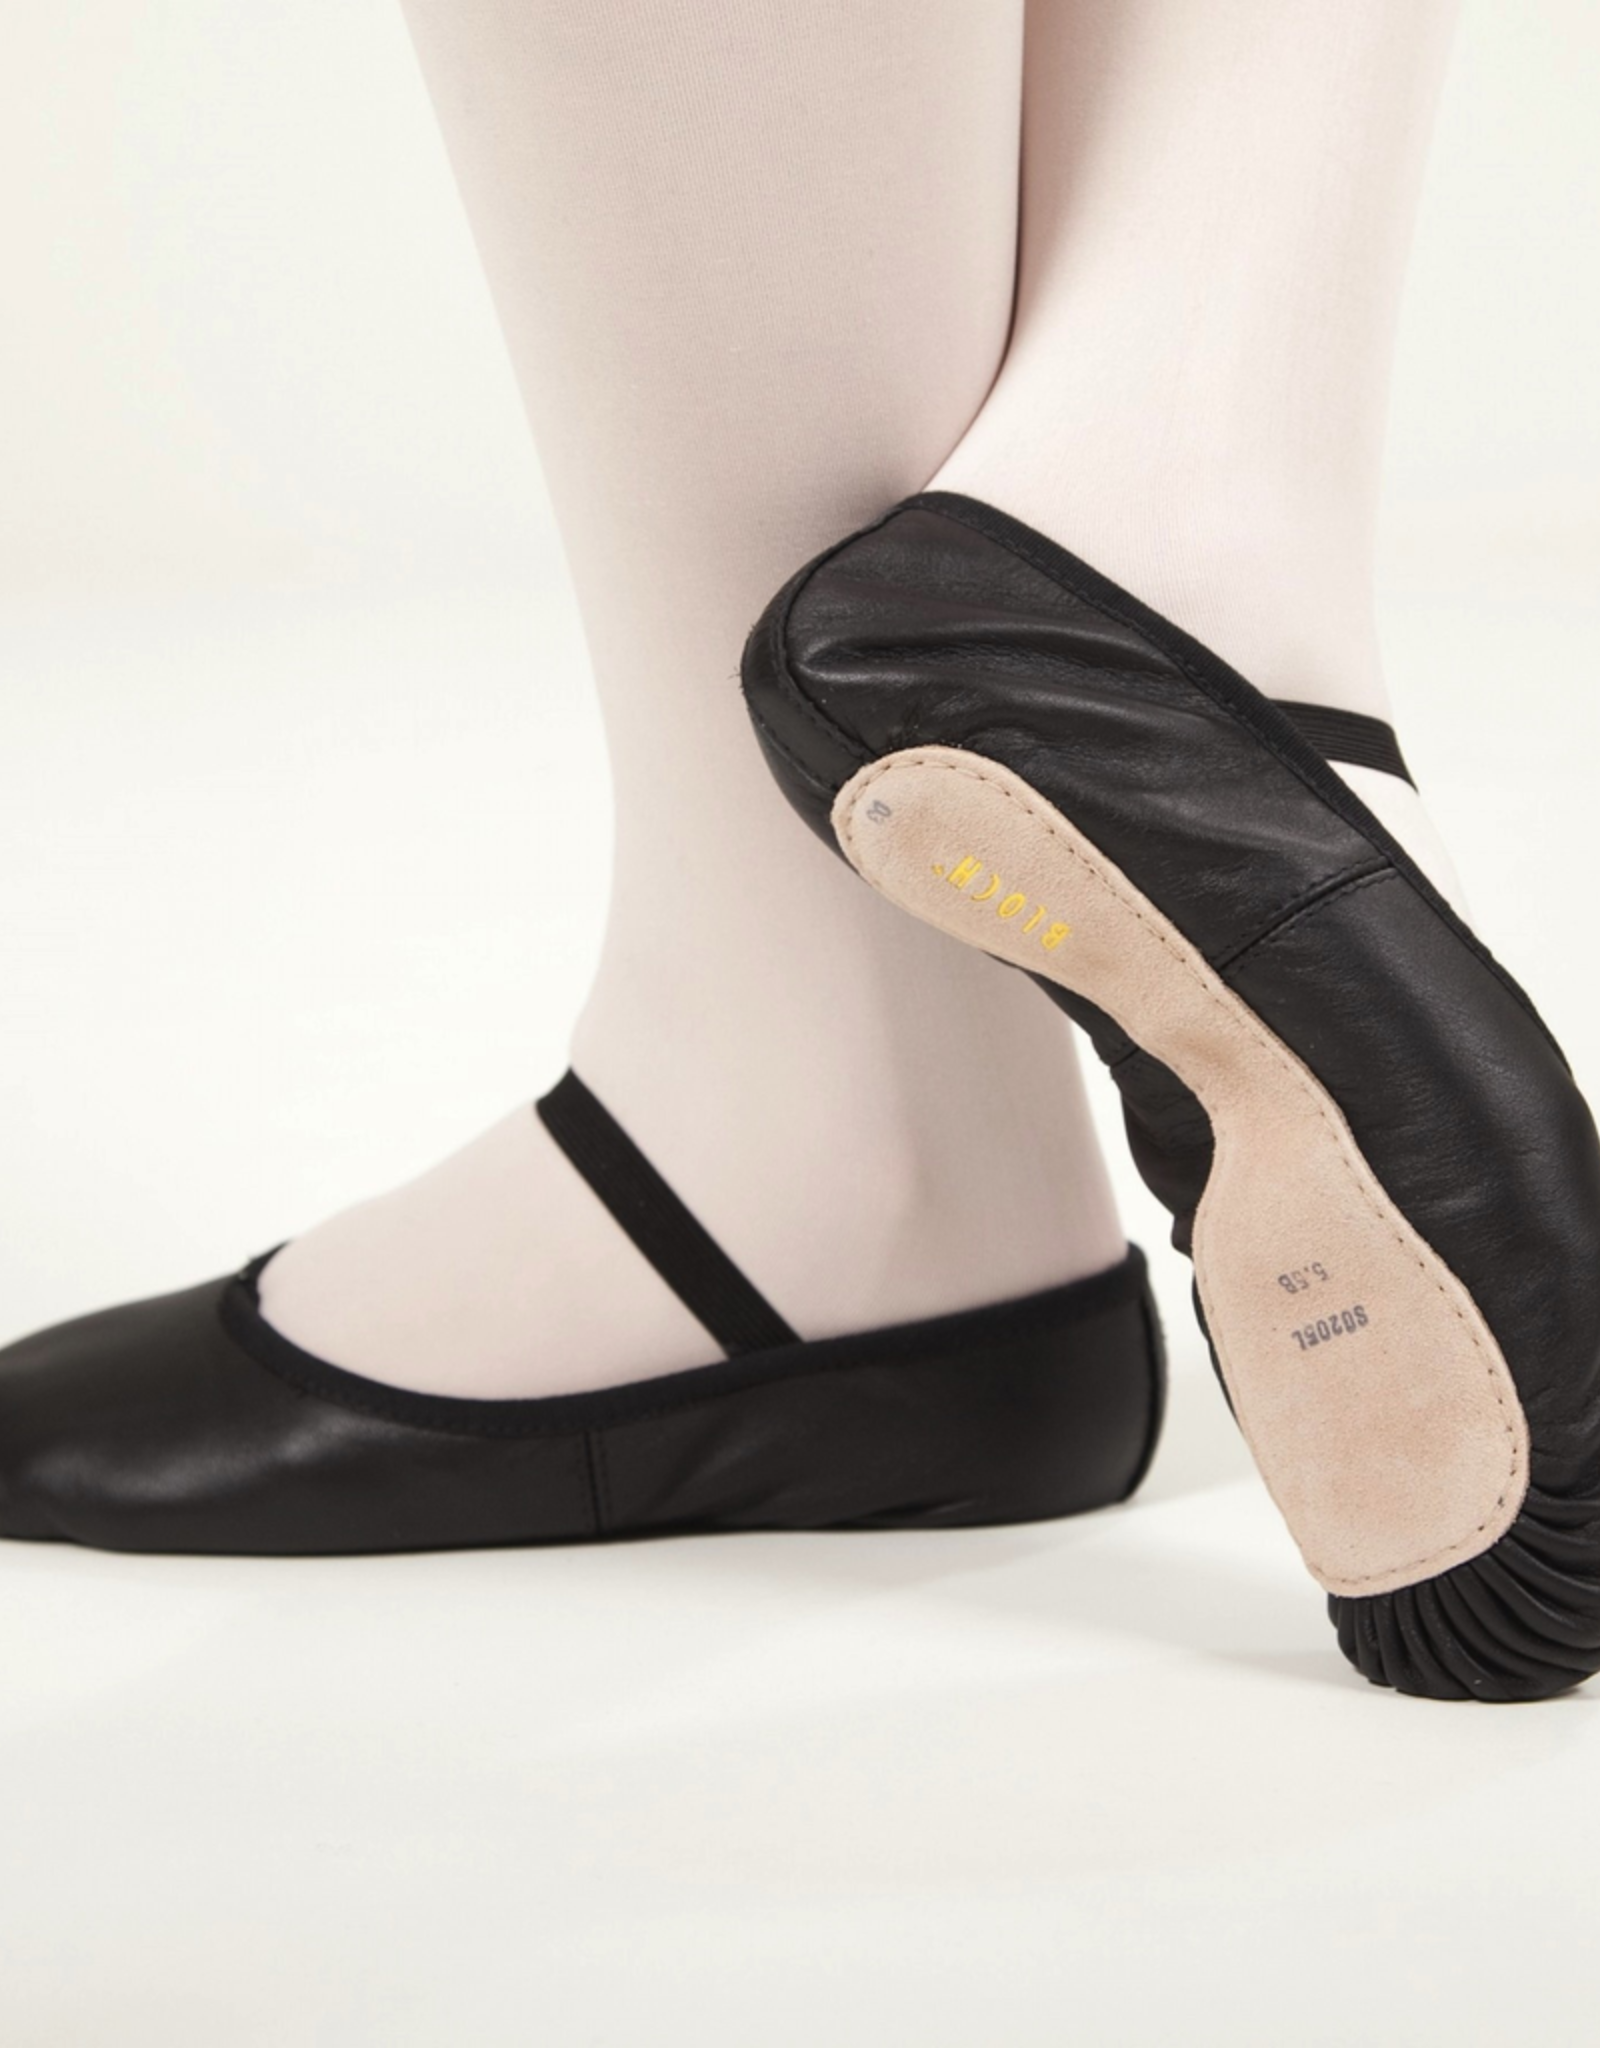 Bloch S0205G Black Full Sole Leather Ballet Slipper Youth